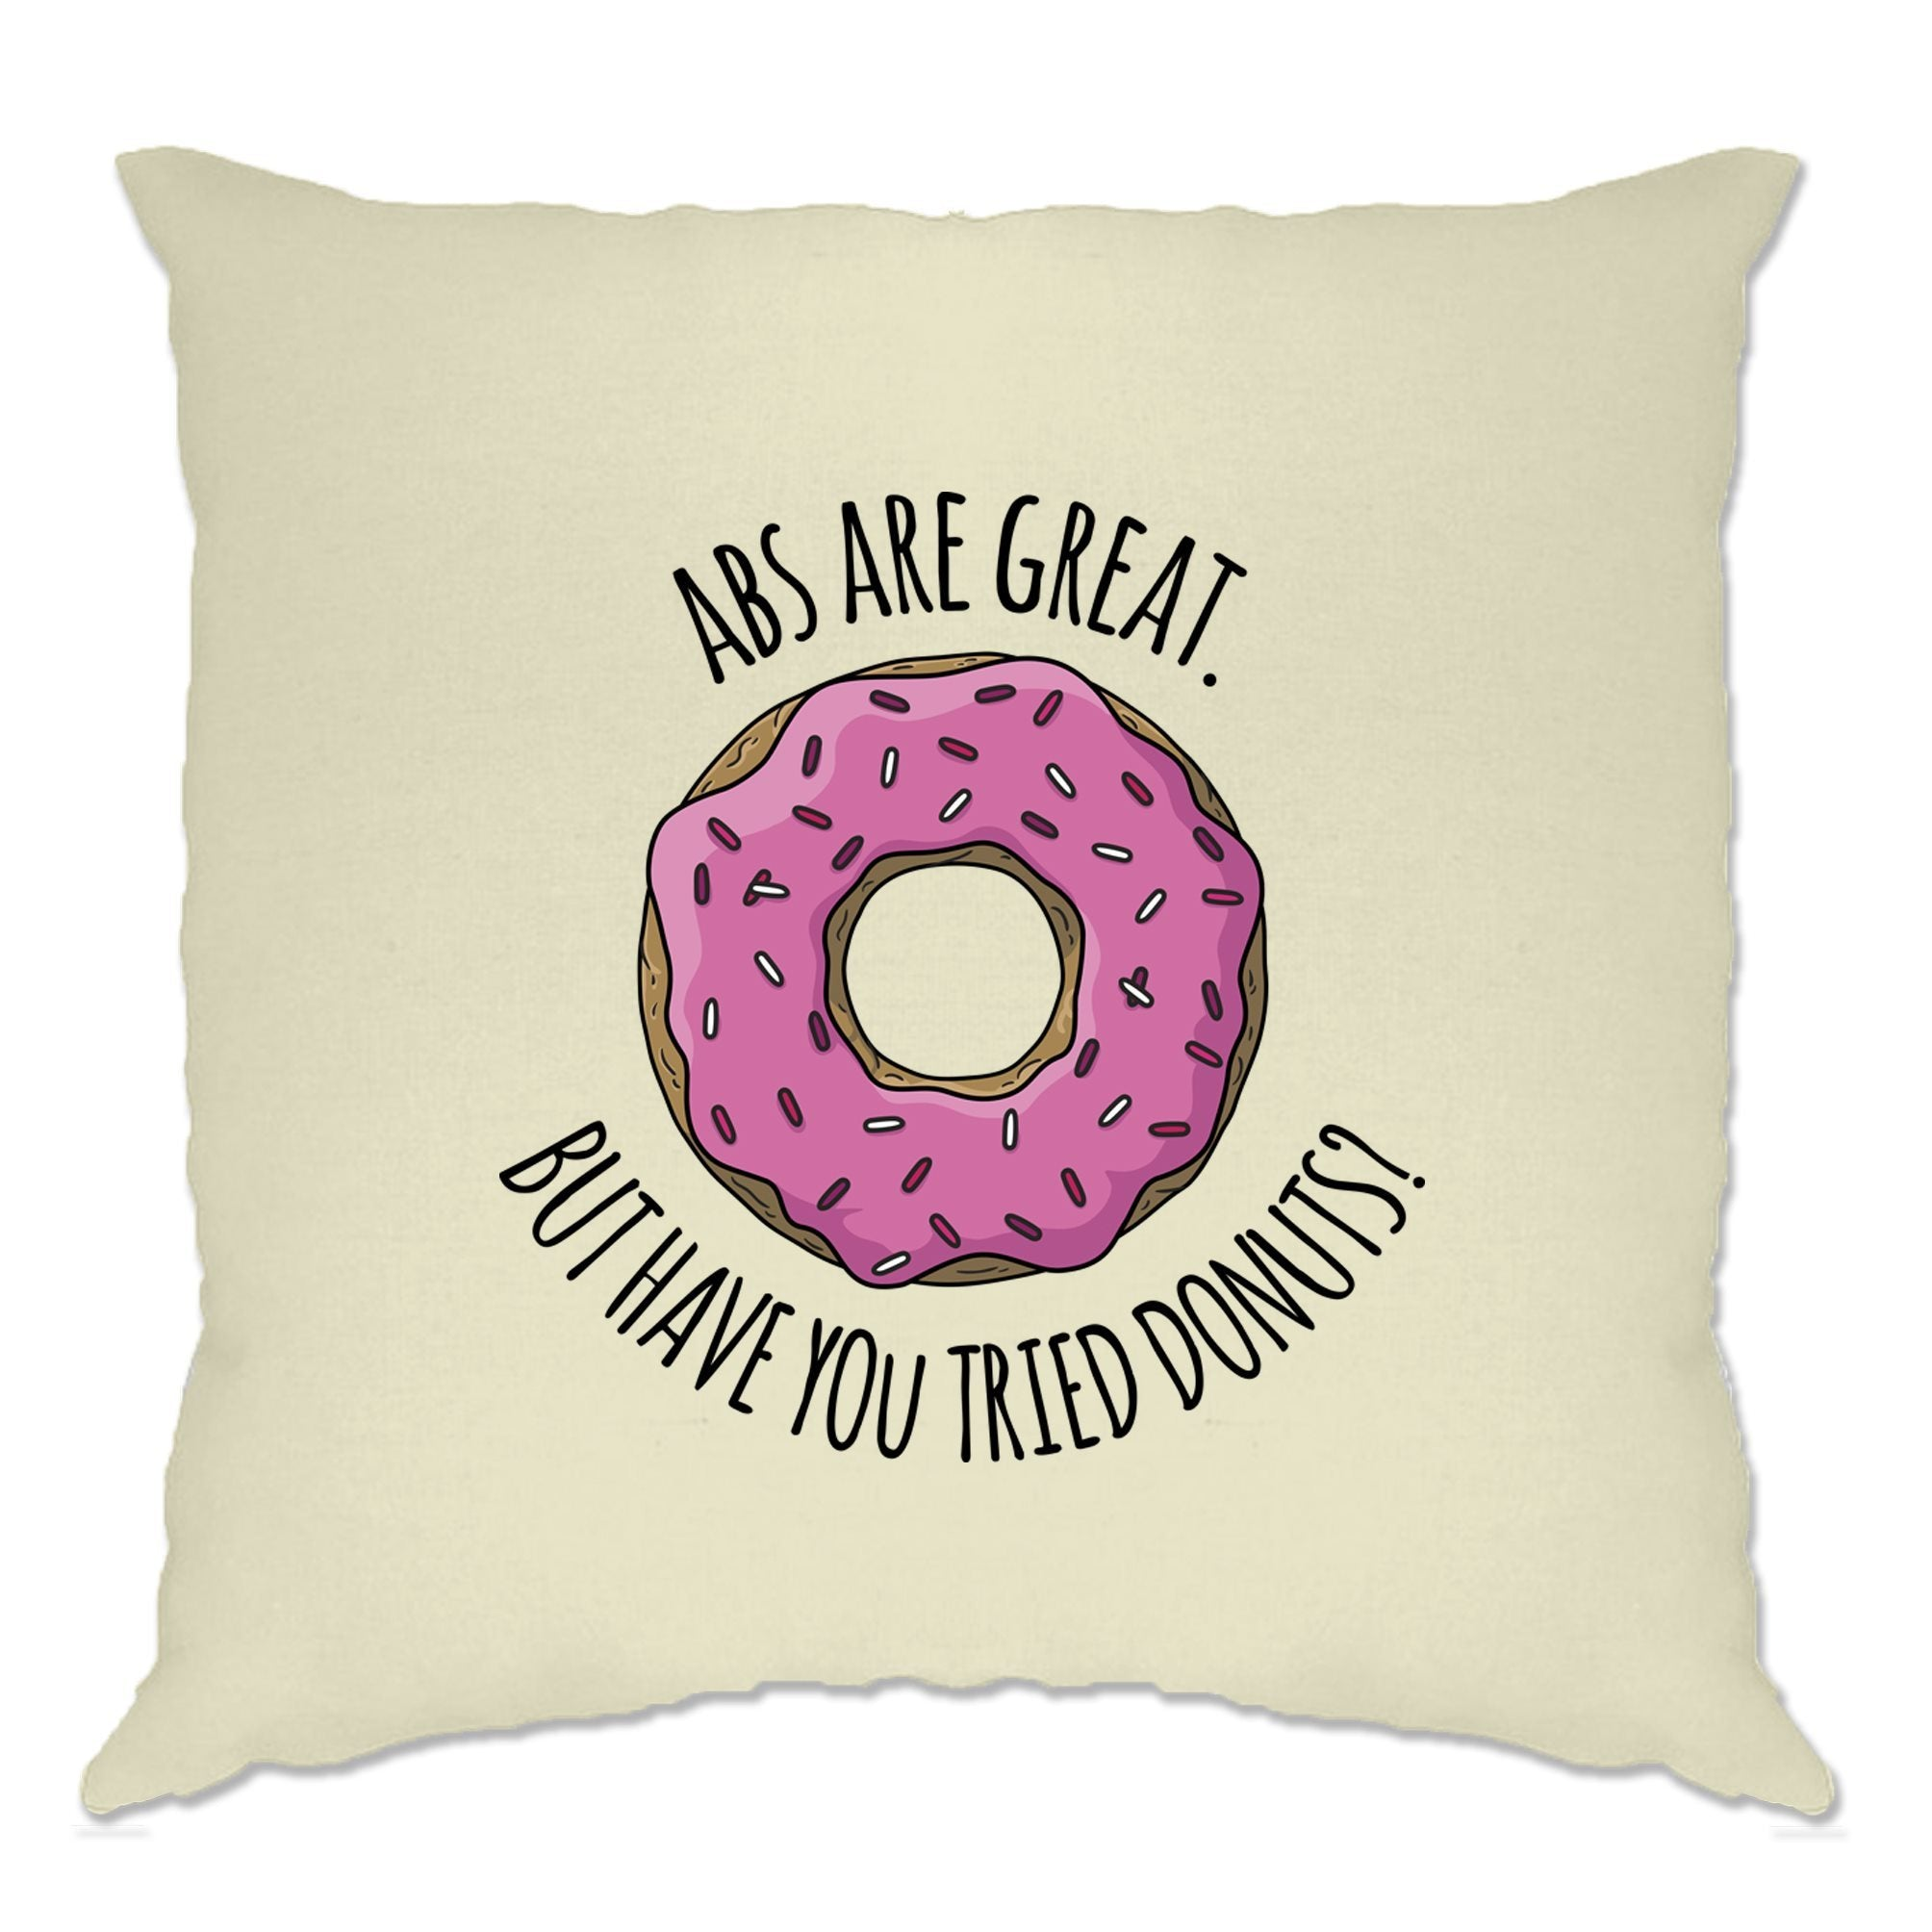 Joke Cushion Cover Abs Are Great But Have You Tried Donuts?